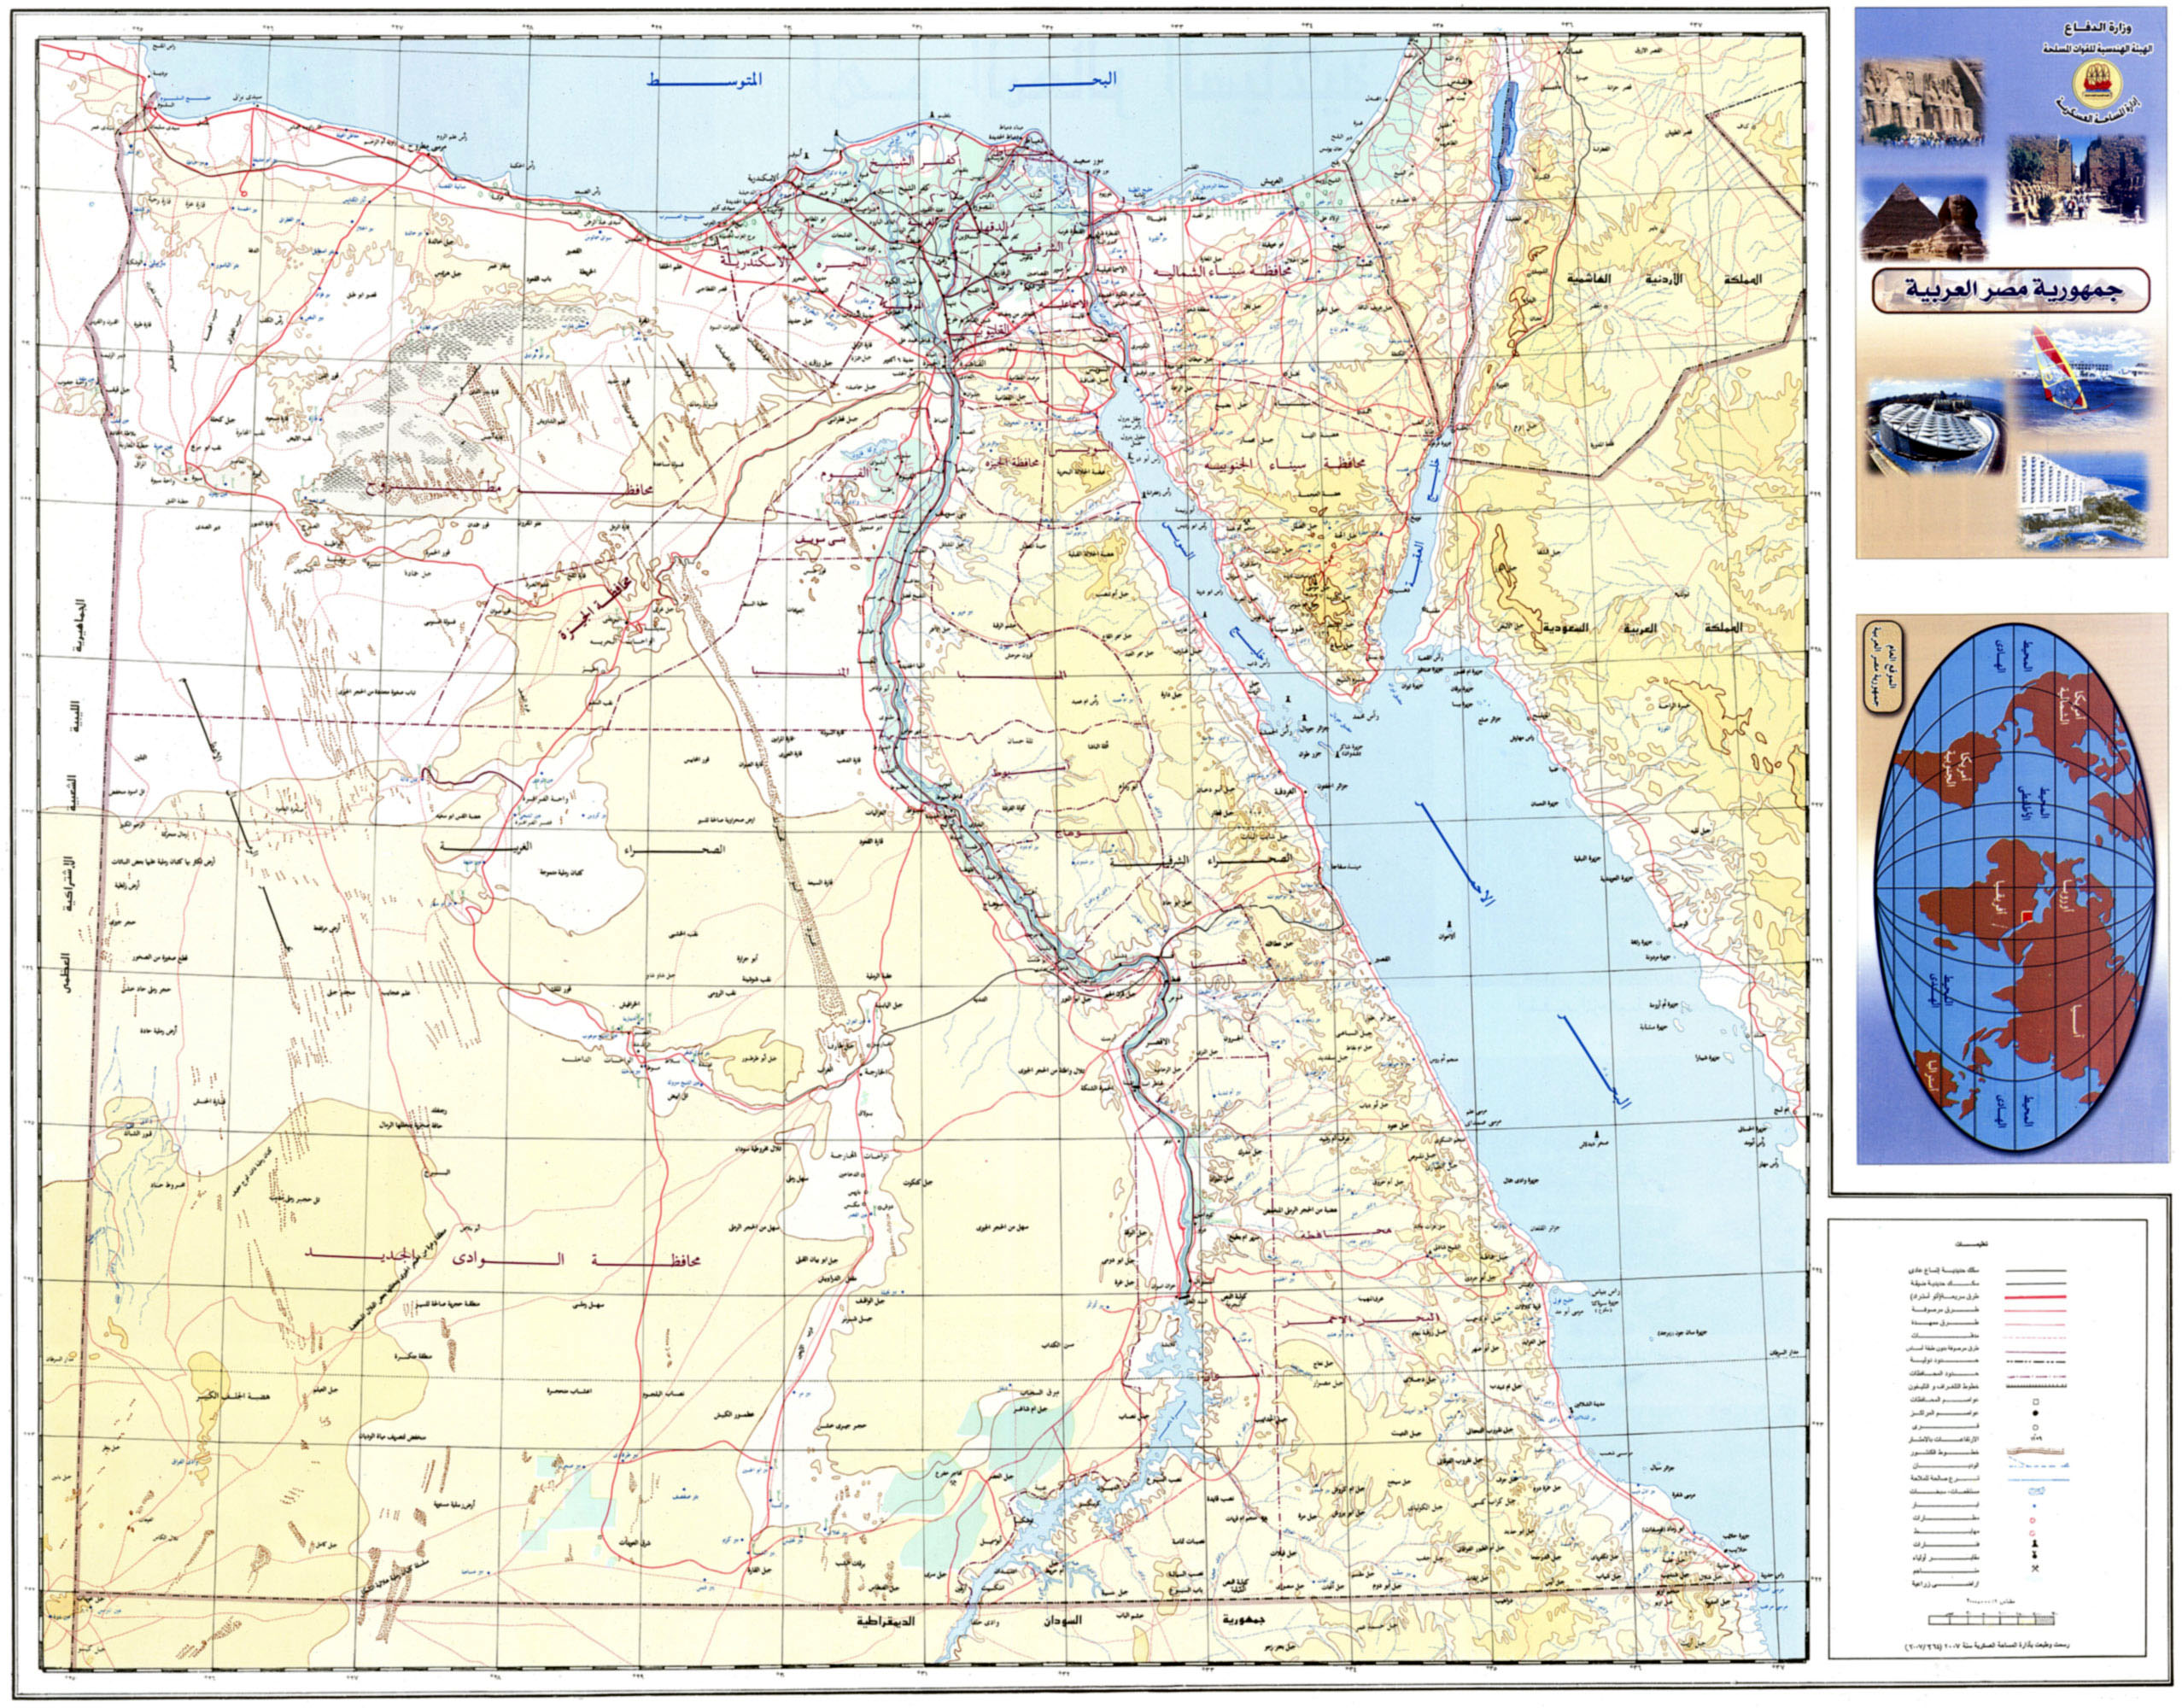 Large Detailed Elevation Map Of Egypt With Other Marks Egypt - Map of egypt elevation